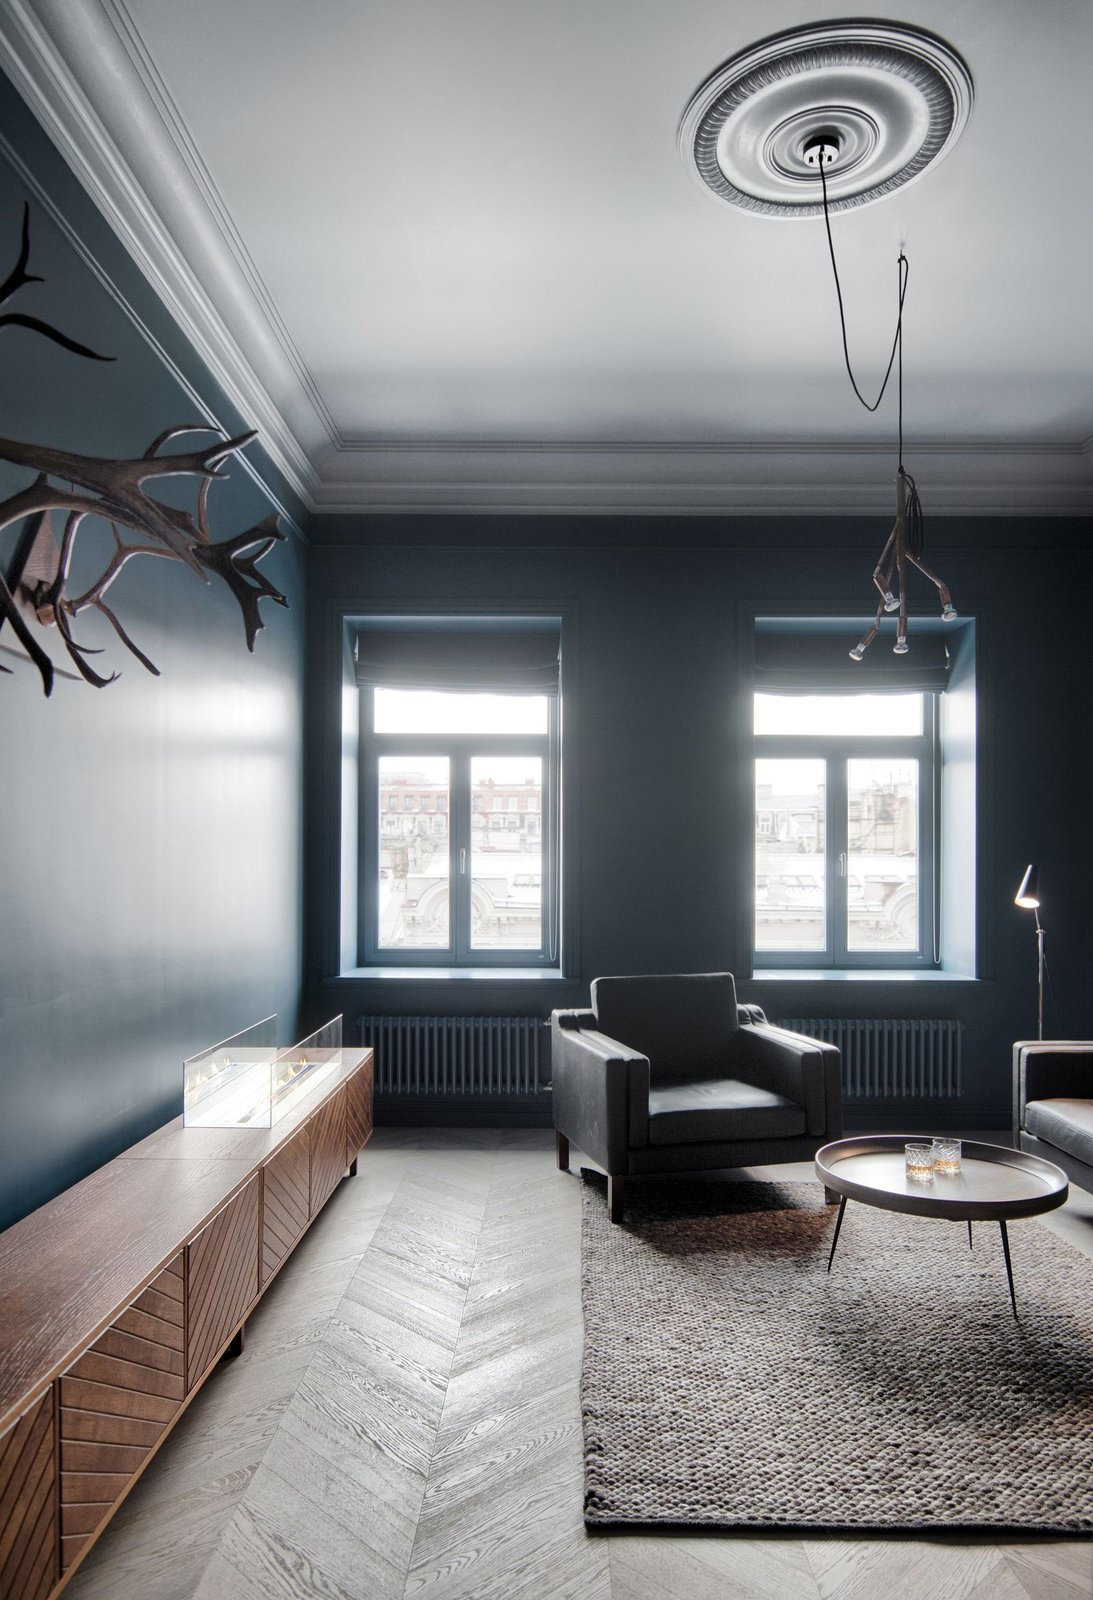 The study in INT2 architecture's Saint Petersburg apartment